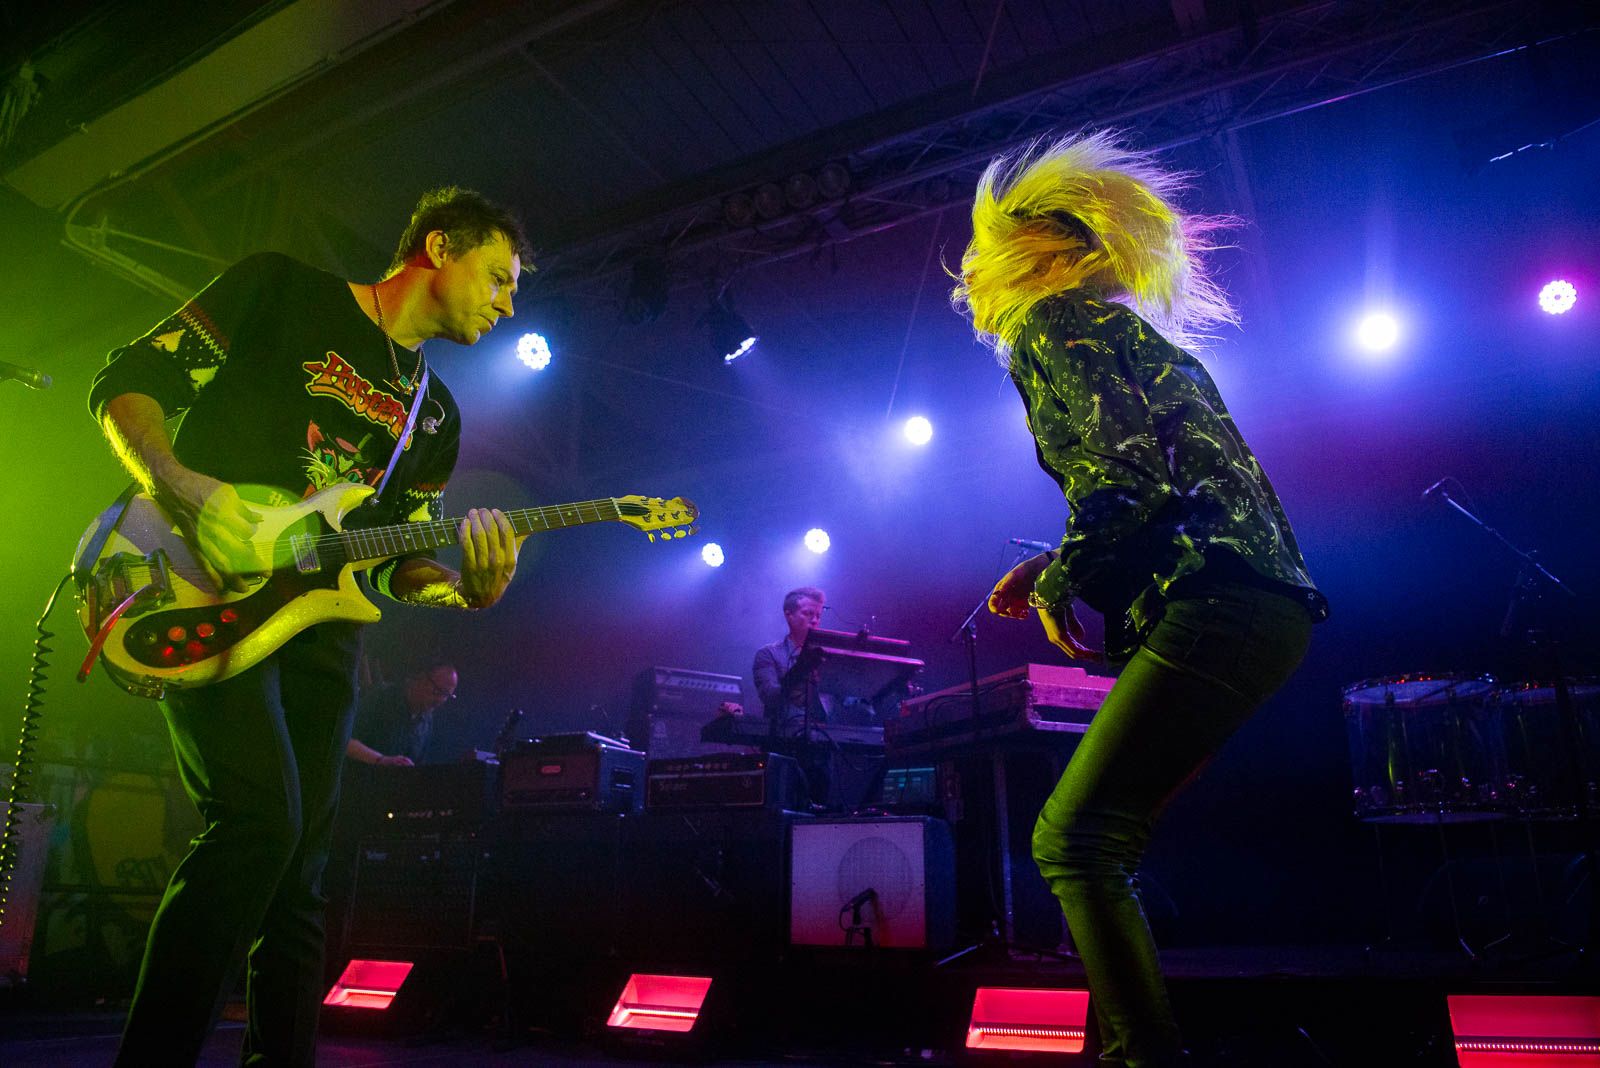 The Kills at House of Vans on Friday, May 18, 2018.